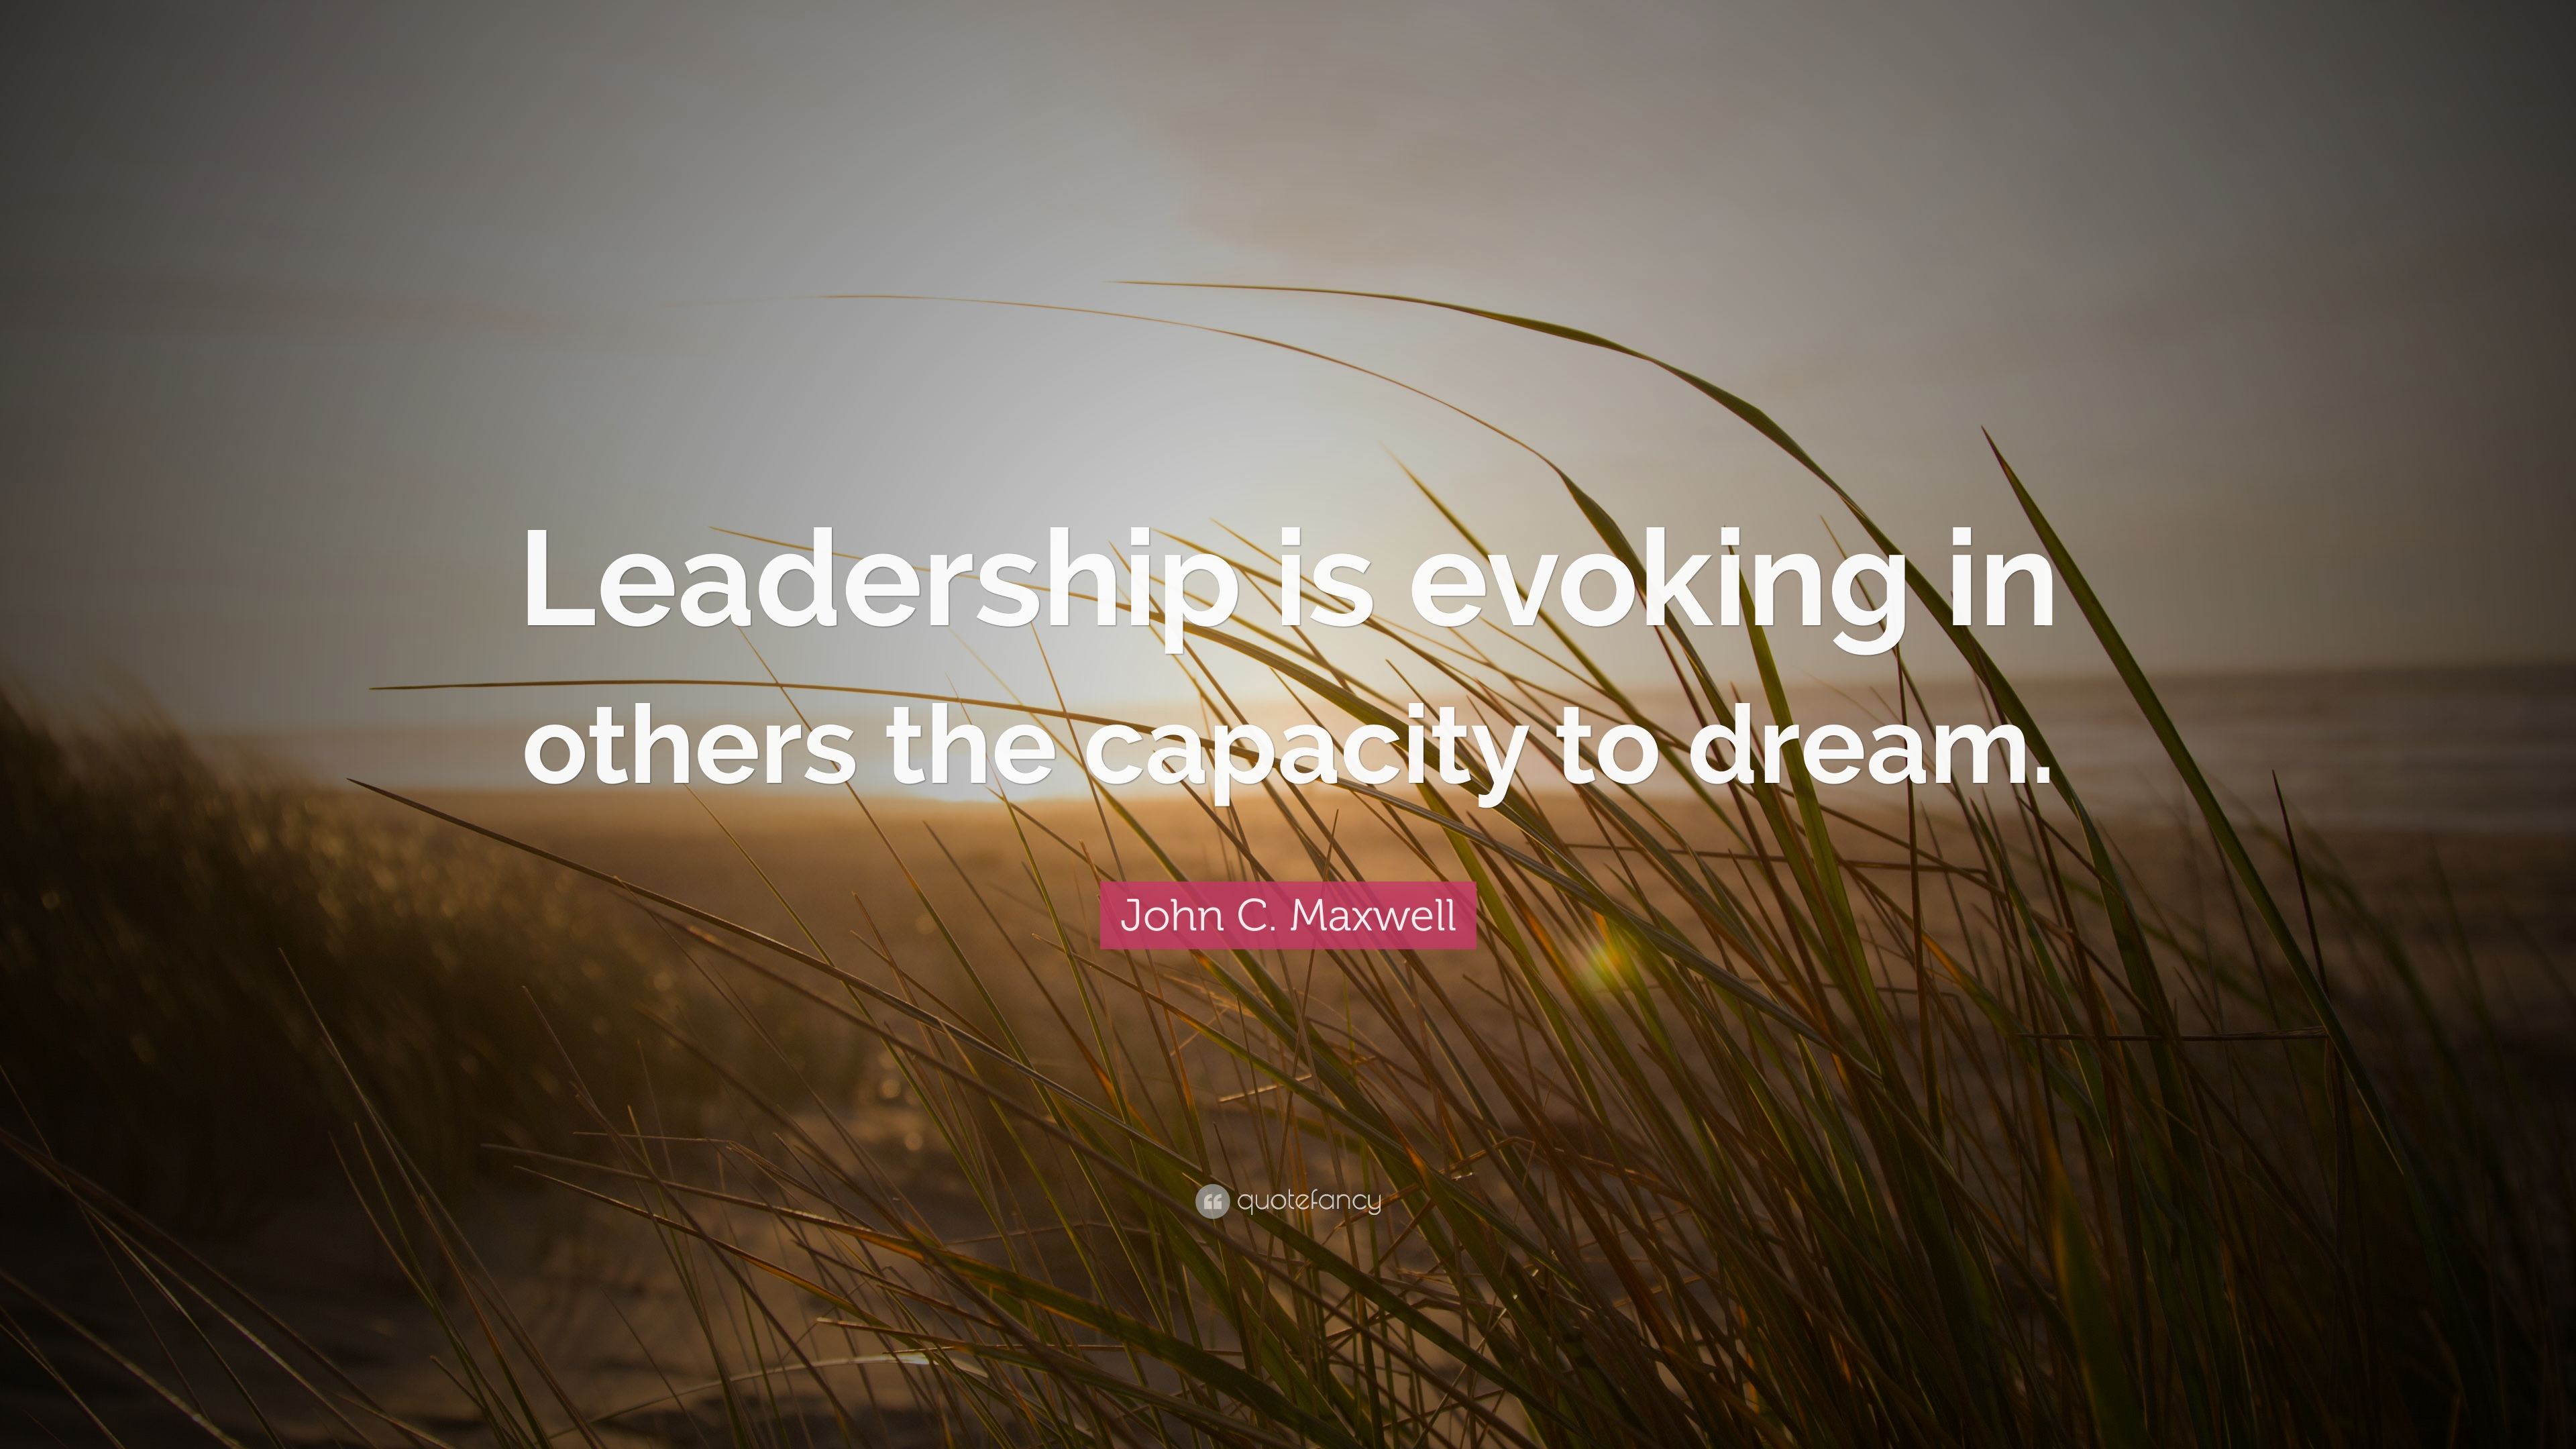 John C Maxwell Quote Leadership Is Evoking In Others The Capacity